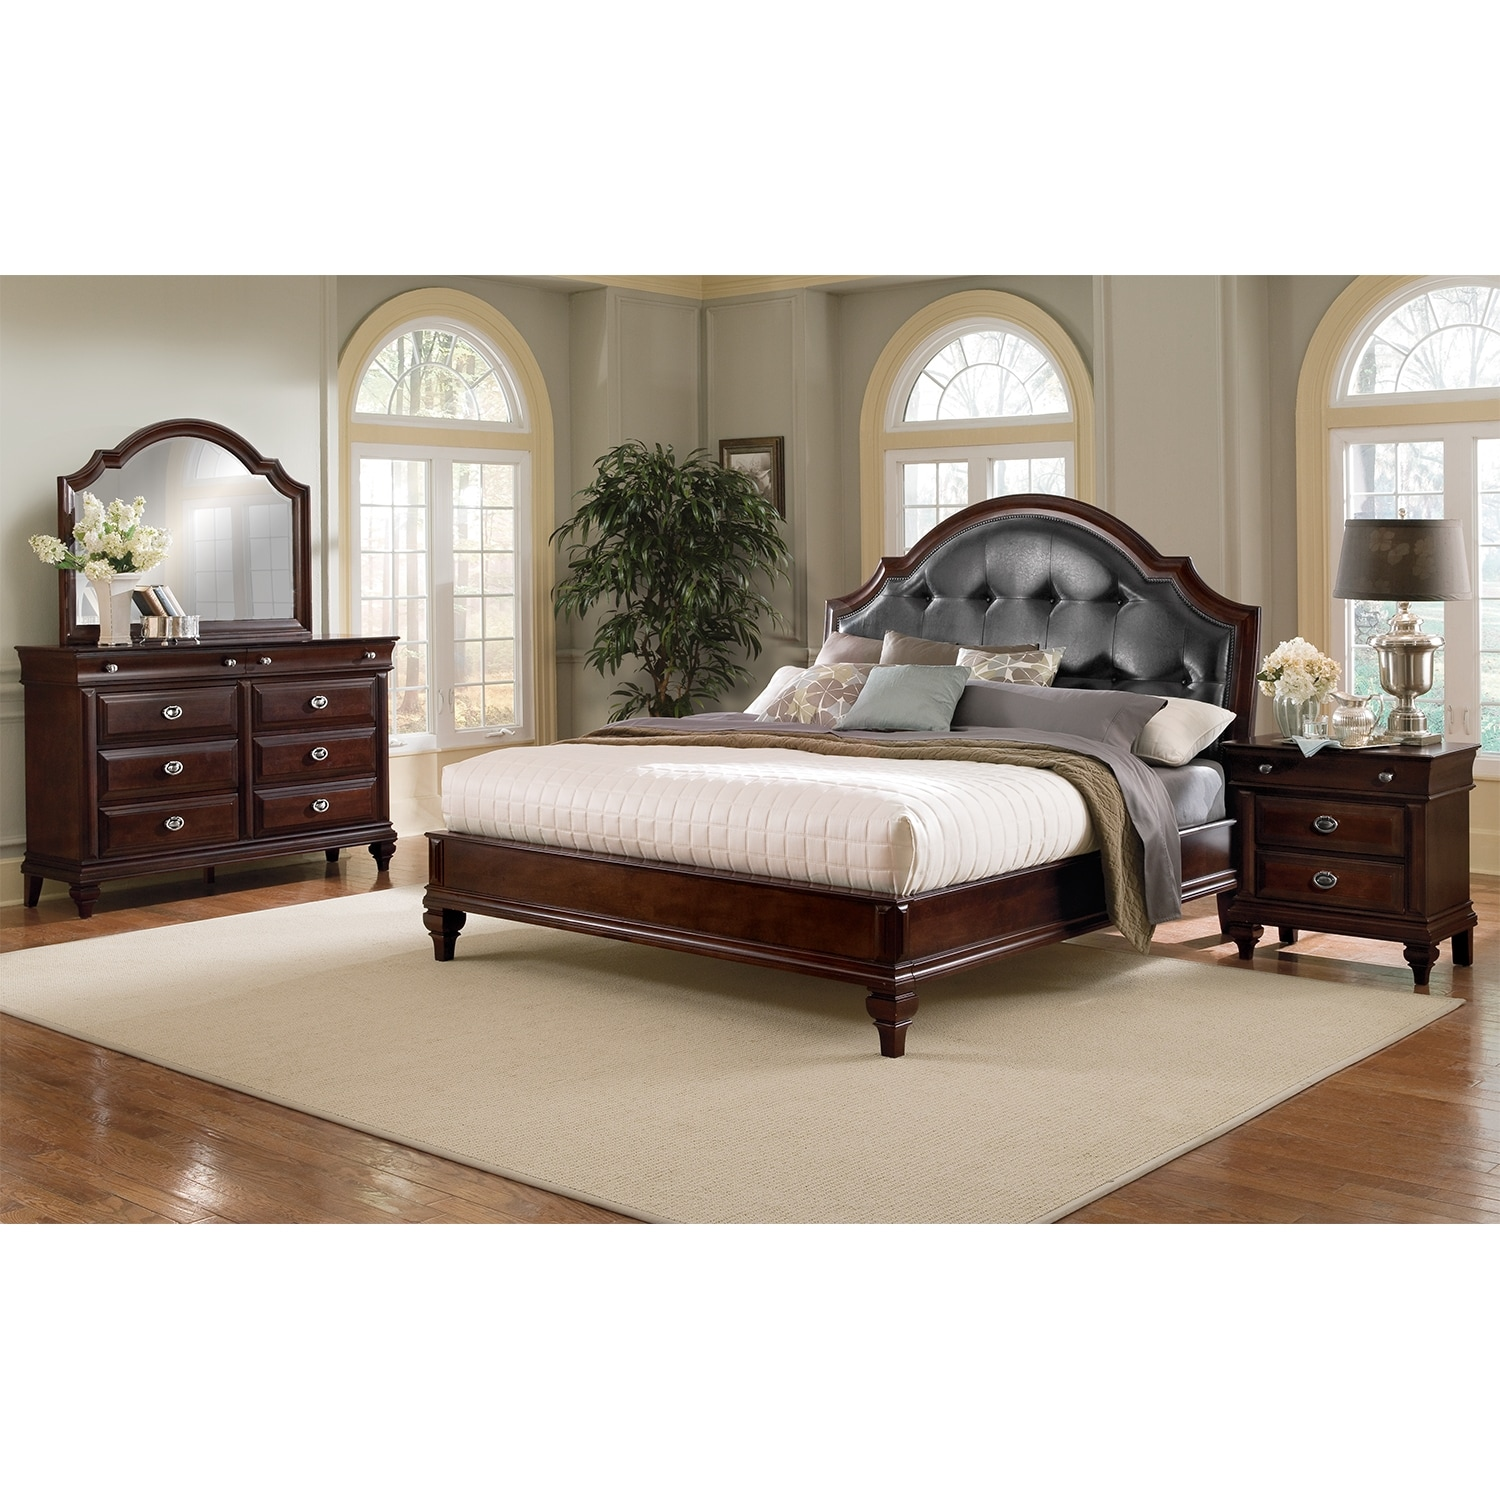 Manhattan 6 pc king bedroom value city furniture - Value city furniture bedroom sets ...